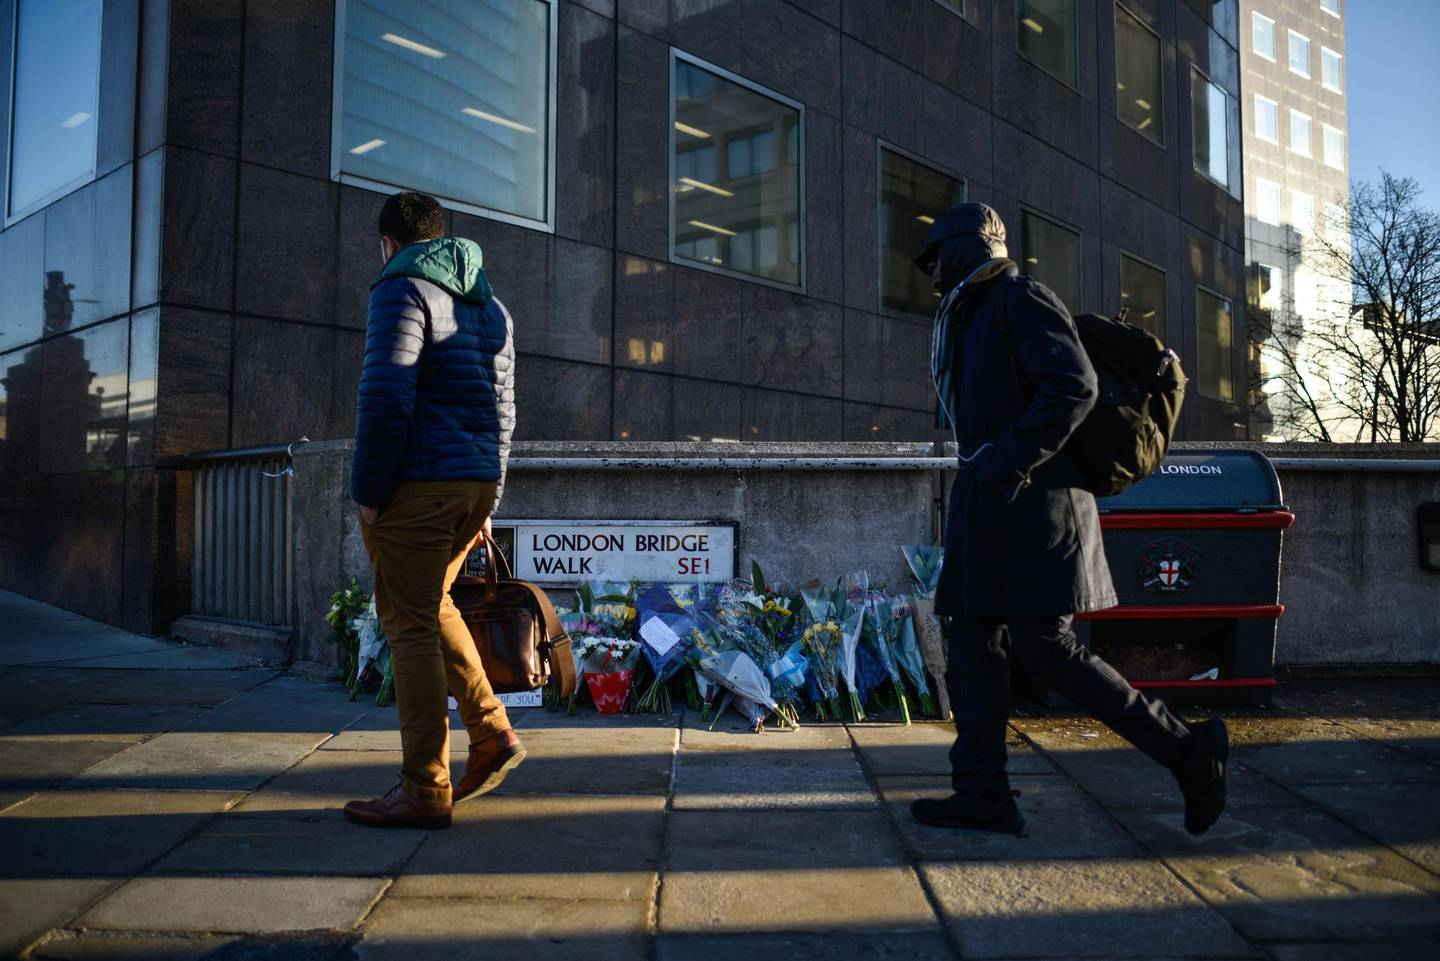 LONDON, ENGLAND - DECEMBER 02: Floral tributes are left for Jack Merritt and Saskia Jones, who were killed in a terror attack, on December 2, 2019 in London, England. Usman Khan, a 28 year old former prisoner convicted of terrorism offences, killed two people in Fishmongers' Hall at the North end of London Bridge on Friday, November 29, before continuing his attack on the bridge. Mr Khan was restrained and disarmed by members of the public before being shot by armed police. (Photo by Peter Summers/Getty Images)